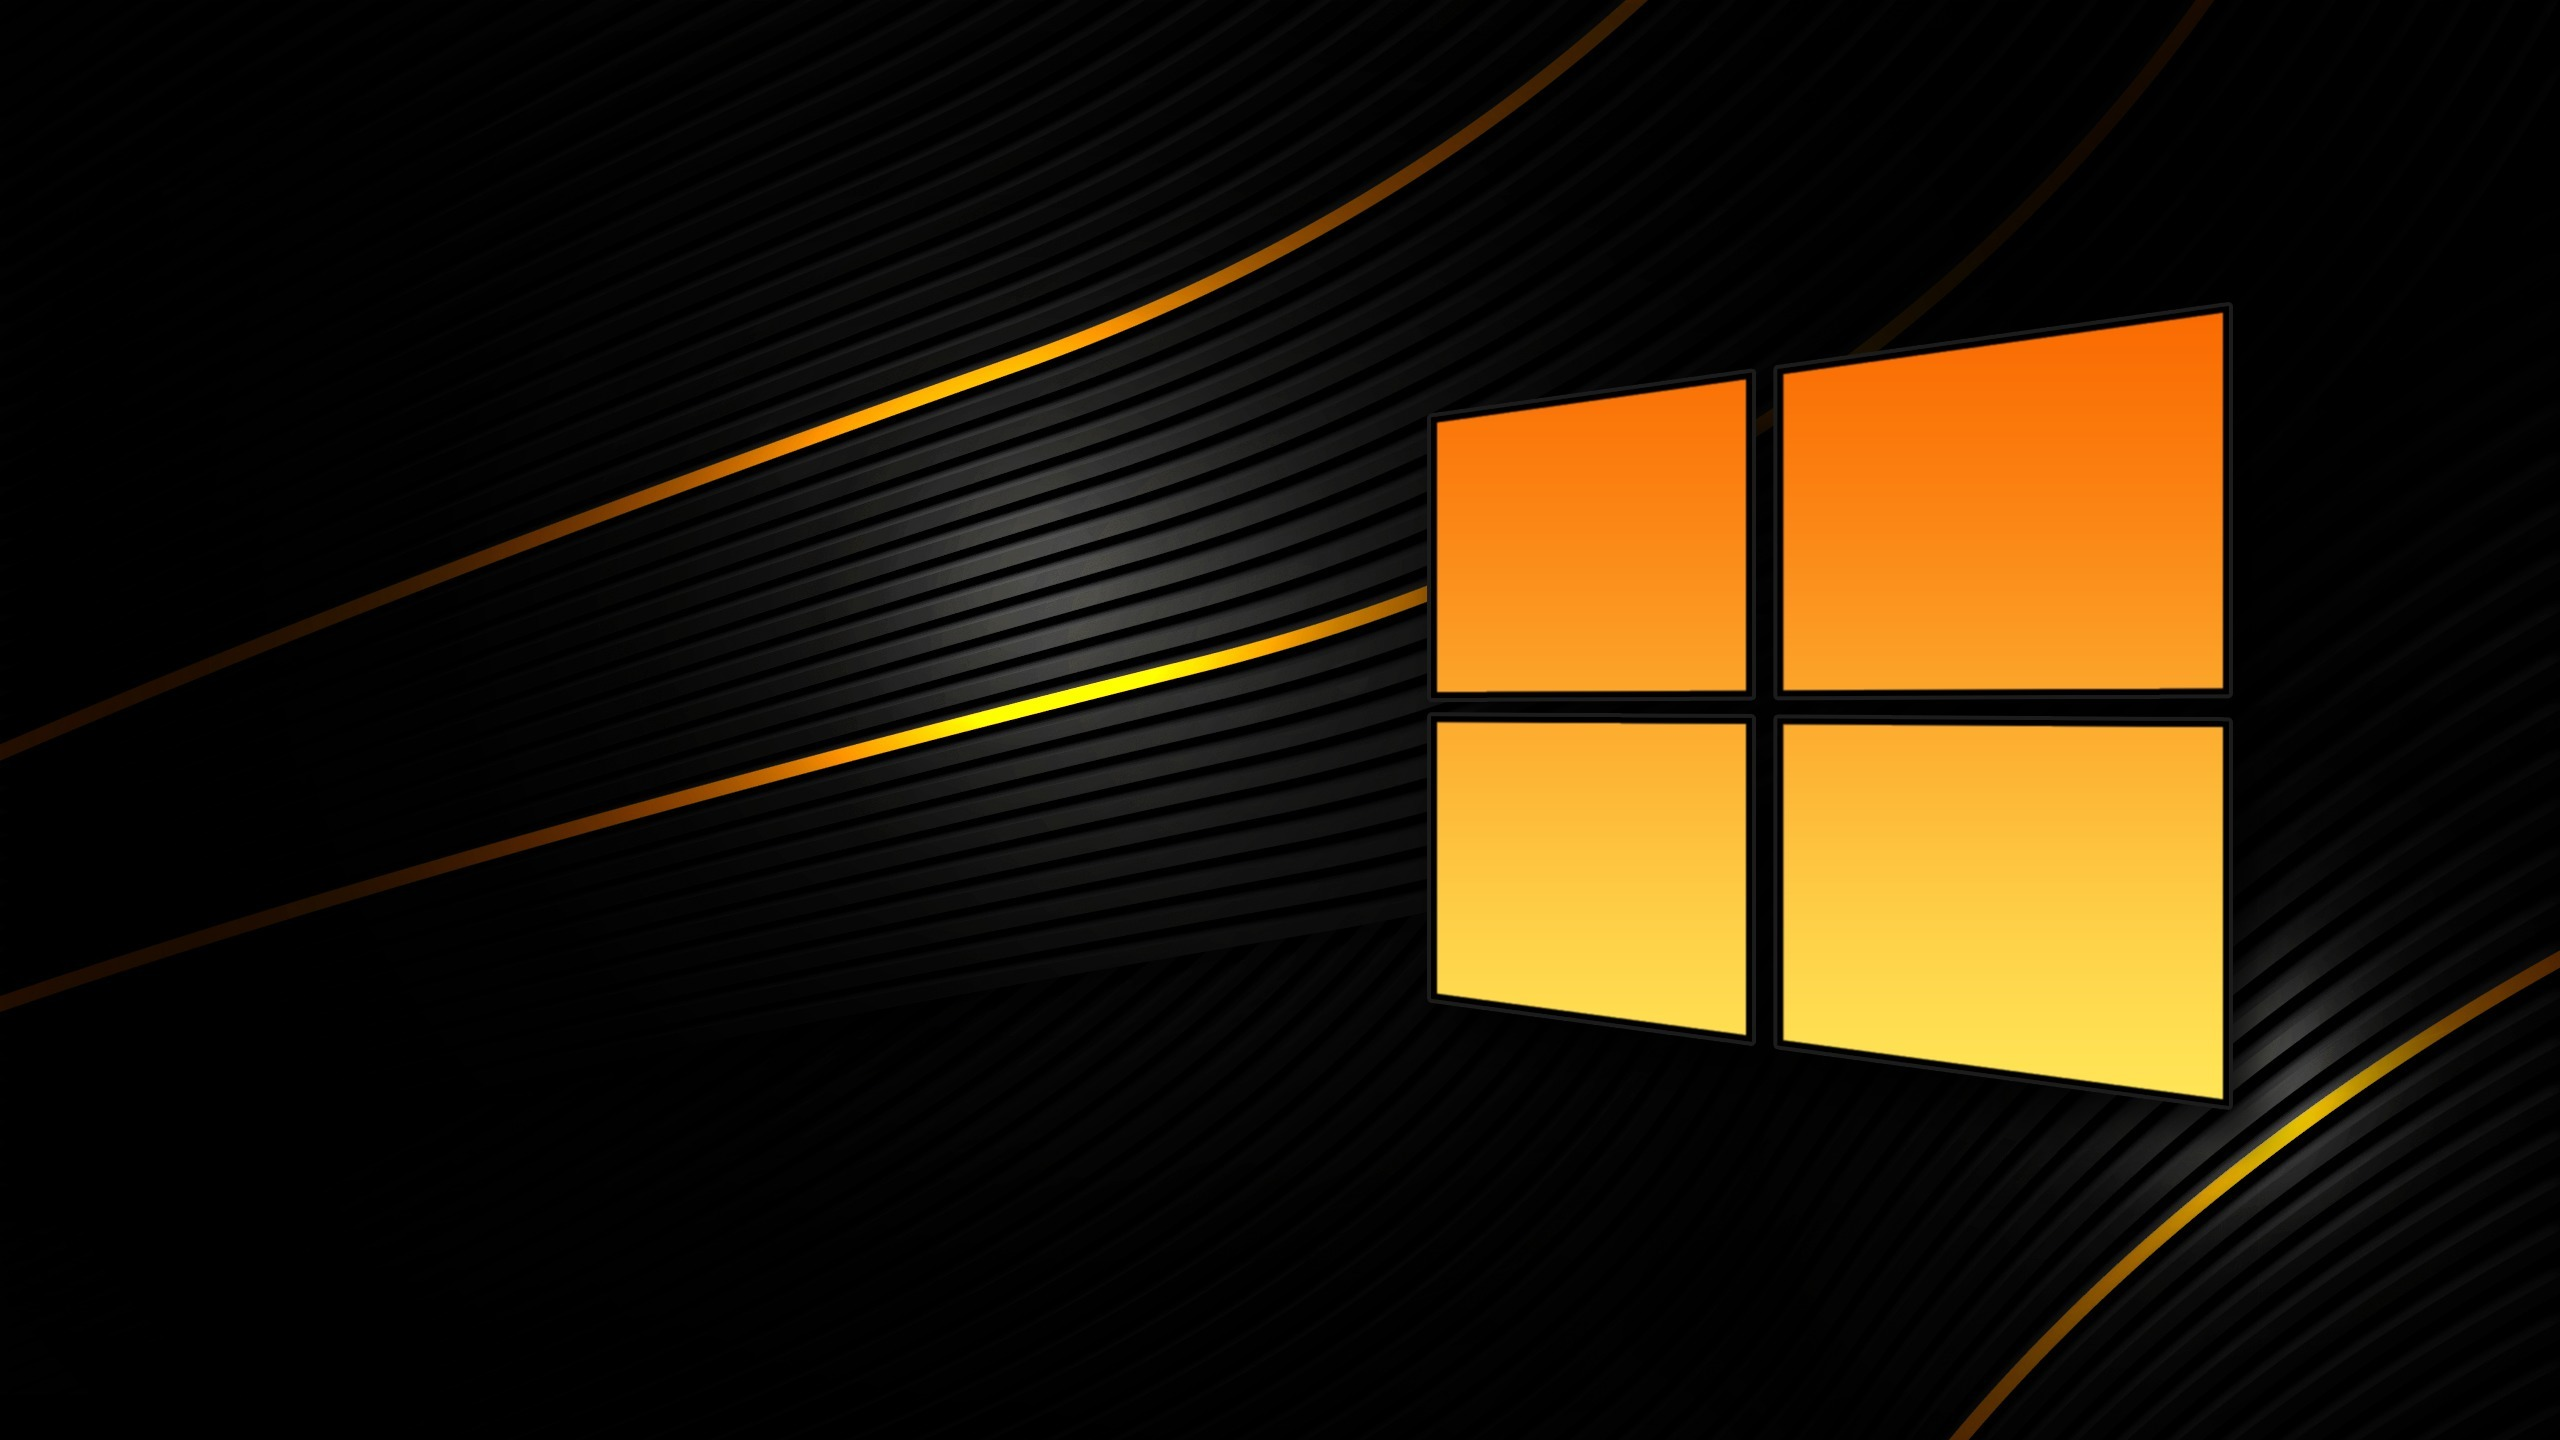 Orange and black Windows 8 Widescreen Wallpaper   15034 2560x1440